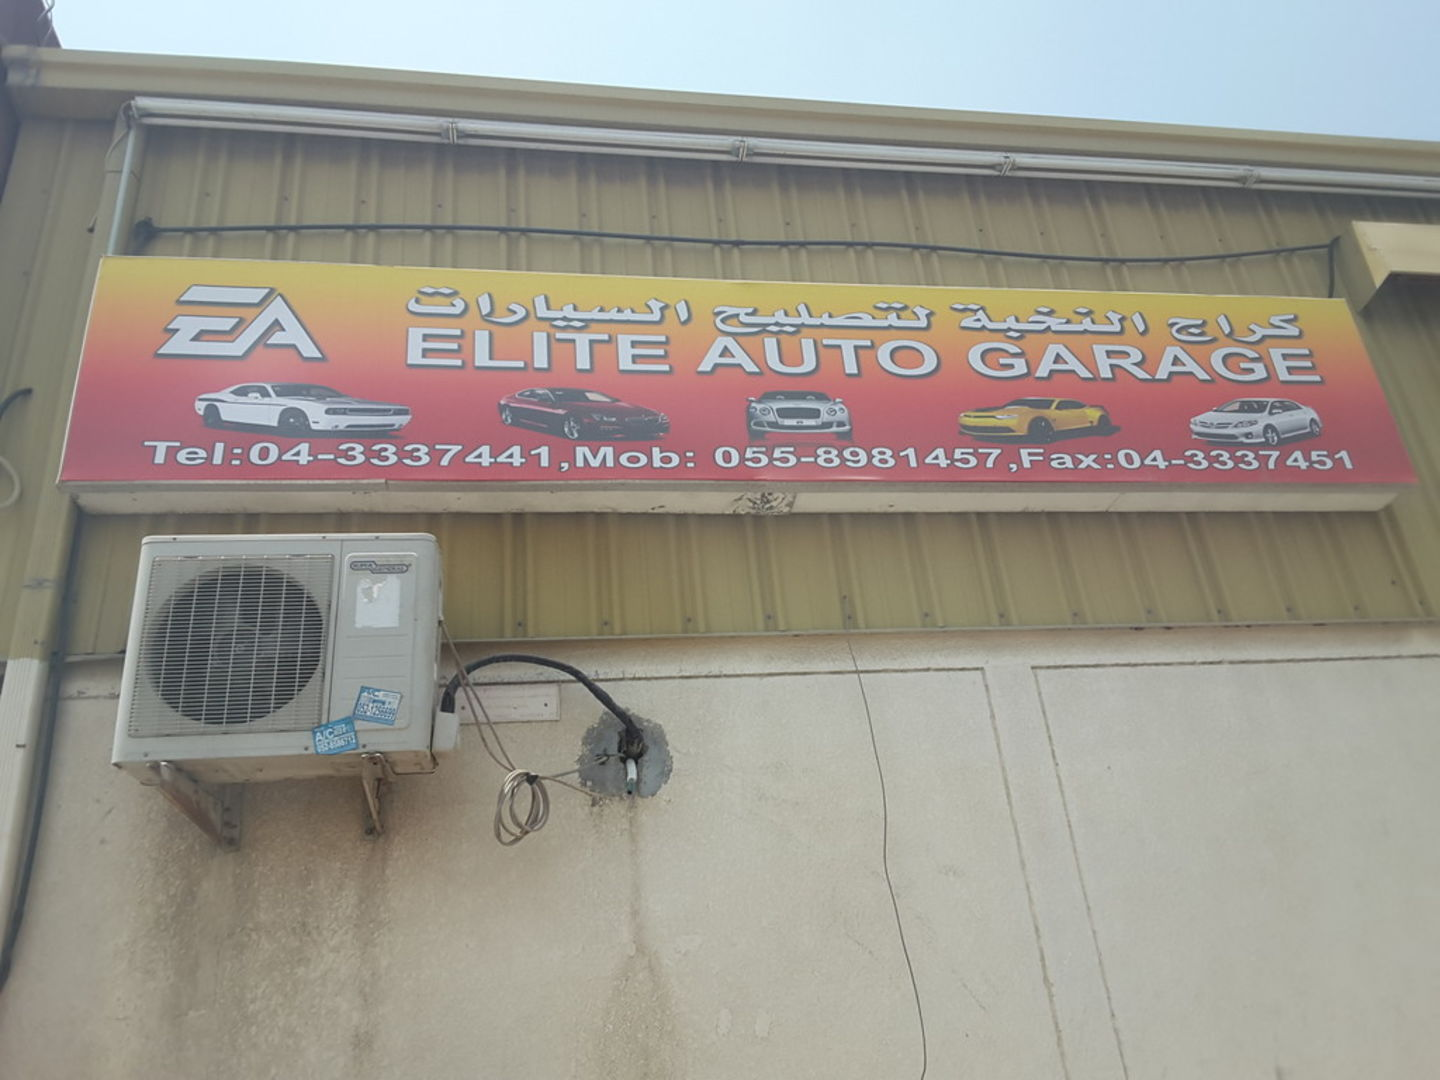 HiDubai-business-elite-auto-repairing-garage-transport-vehicle-services-car-assistance-repair-ras-al-khor-industrial-2-dubai-2